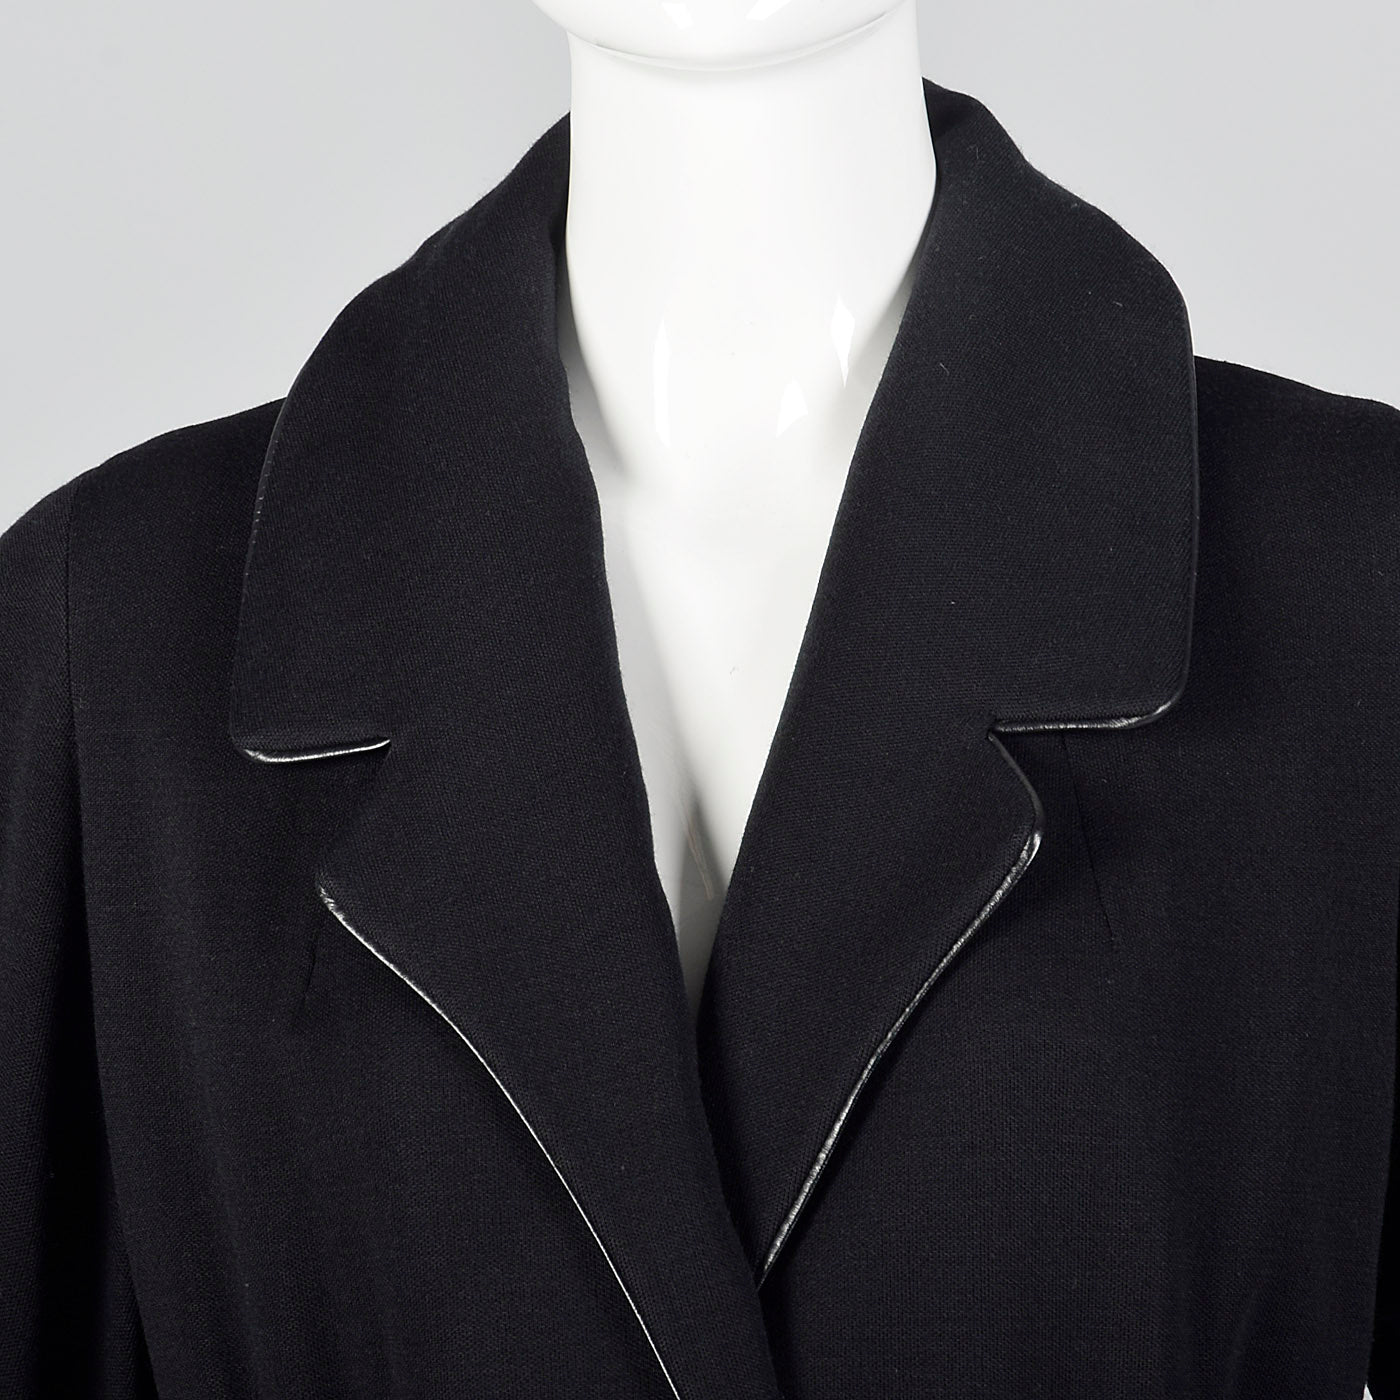 1950s Black Knit Trench Coat with Red Lining